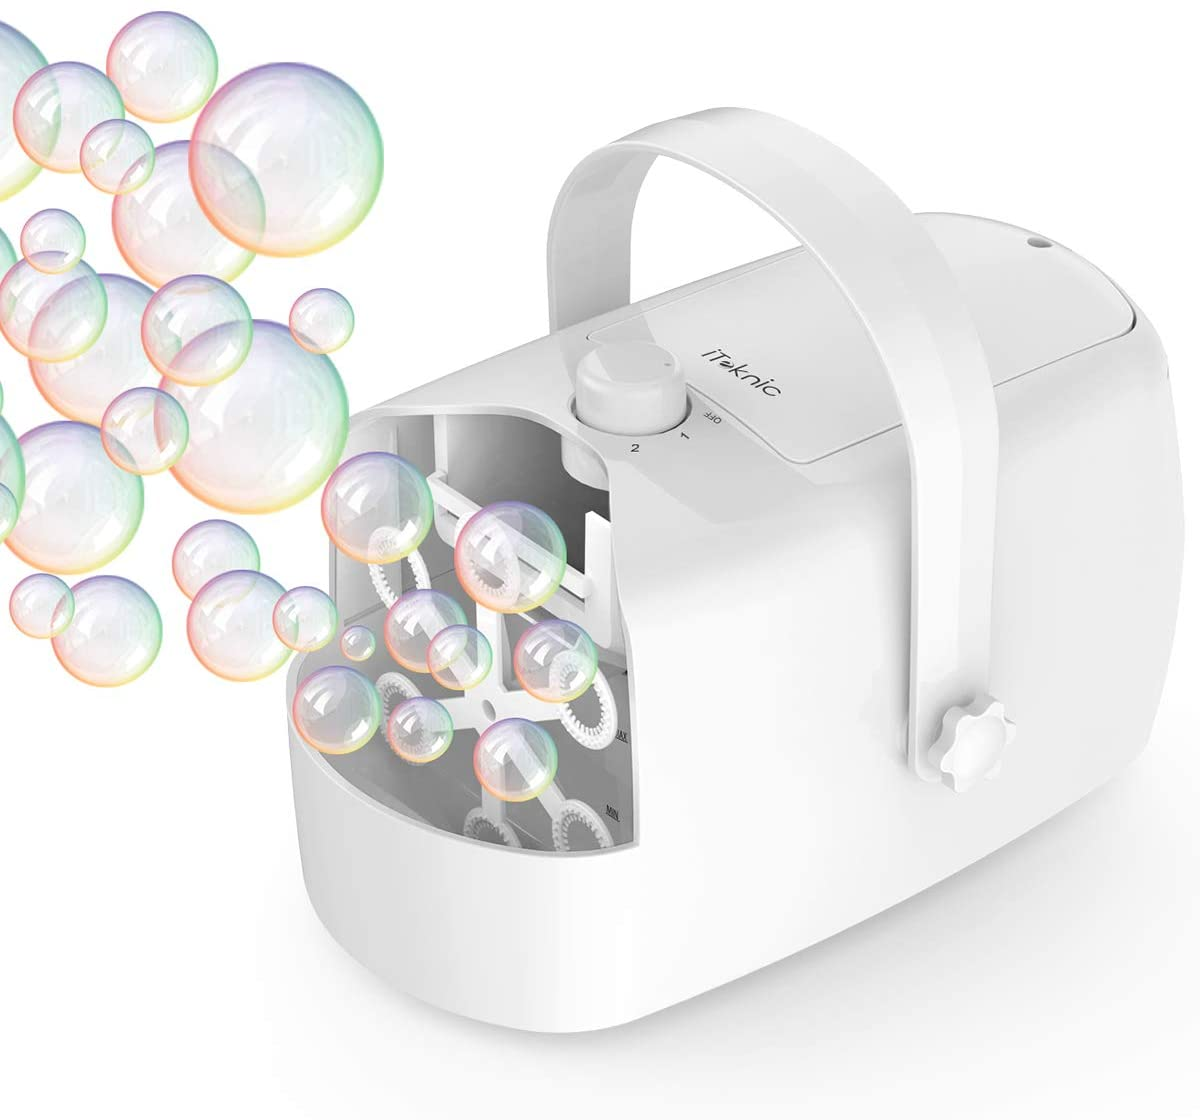 Automatic Bubble Machine on Amazon | iTeknic Bubble Machine, Automatic Bubble Blower, Portable Auto Bubble Maker with High Output for Outdoor/Indoor Use